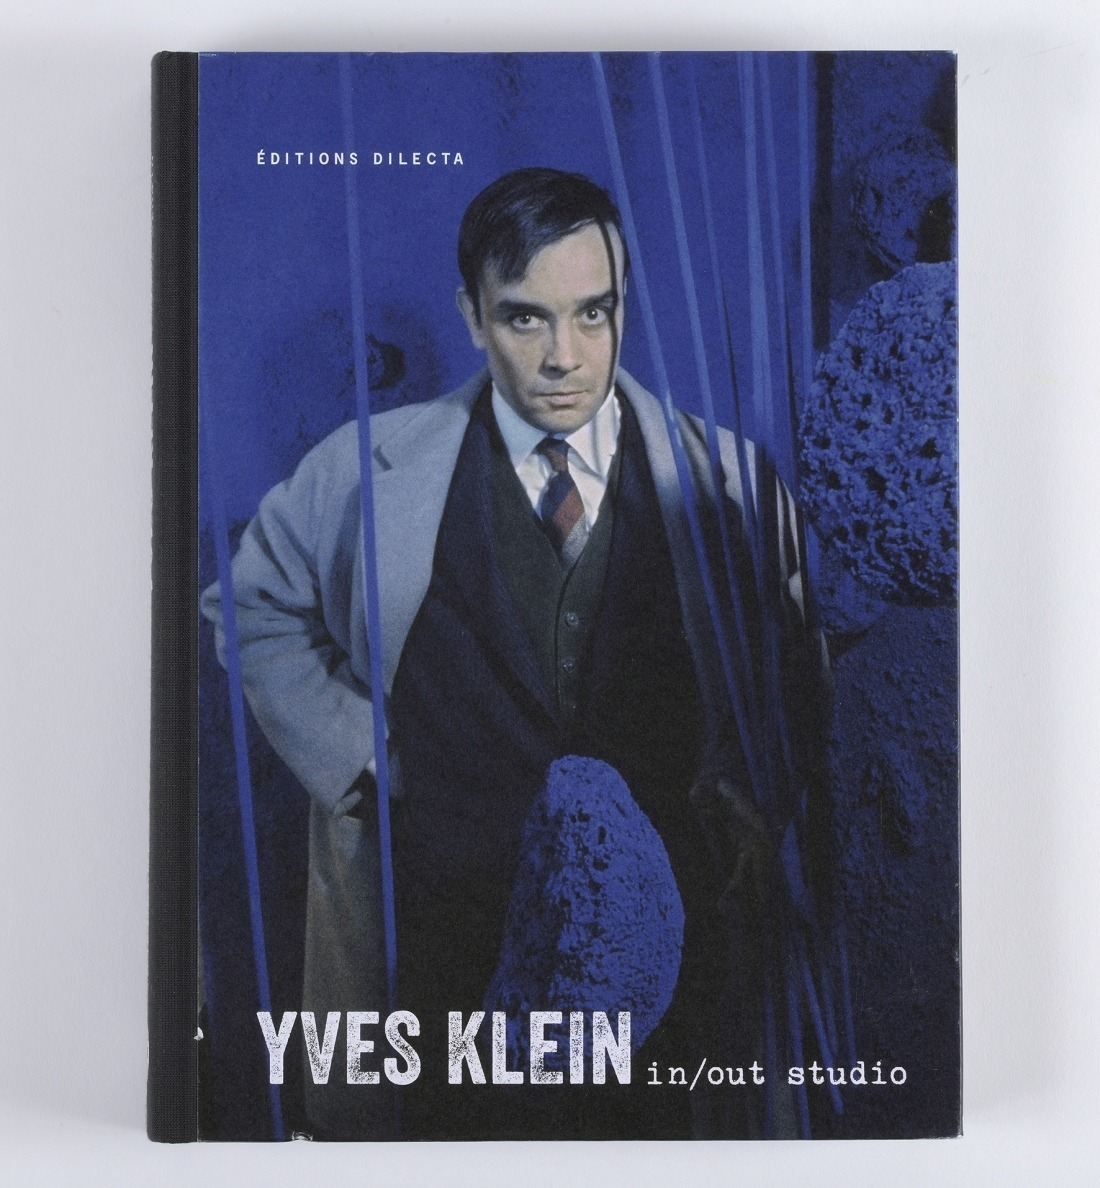 YVES KLEIN : IN / OUT STUDIO